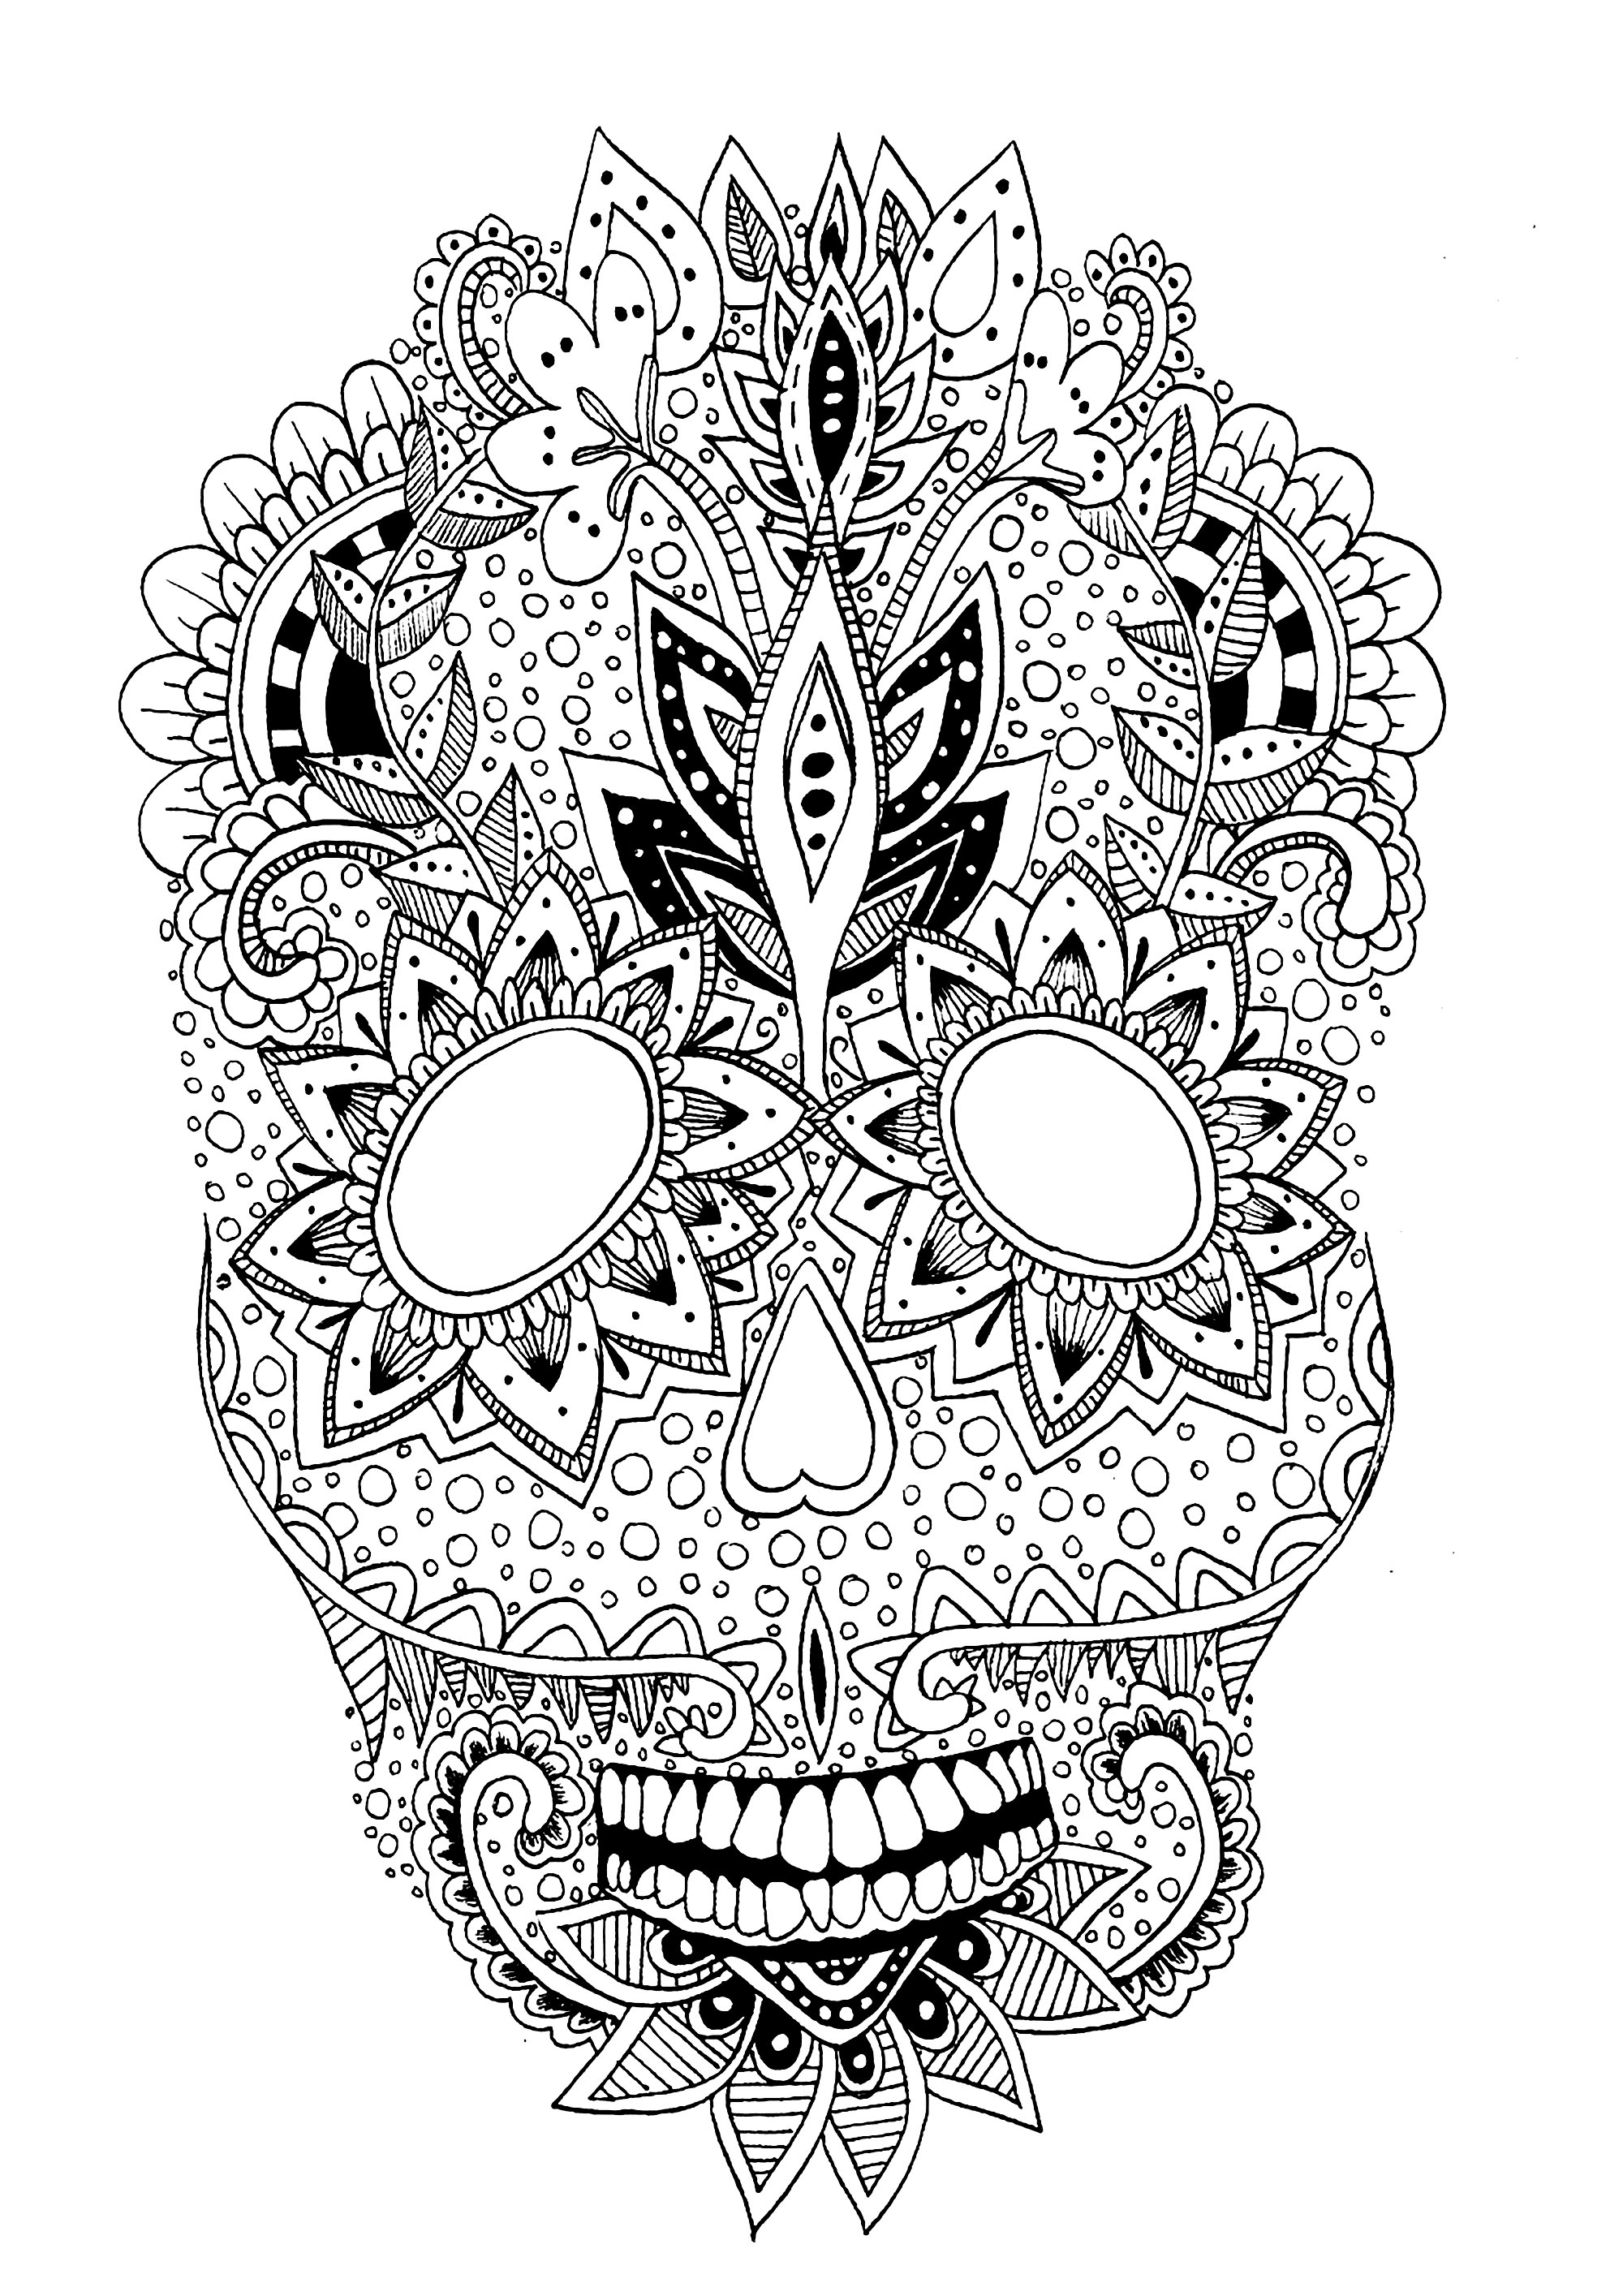 An original skull for a relaxing moment with a coloring page.